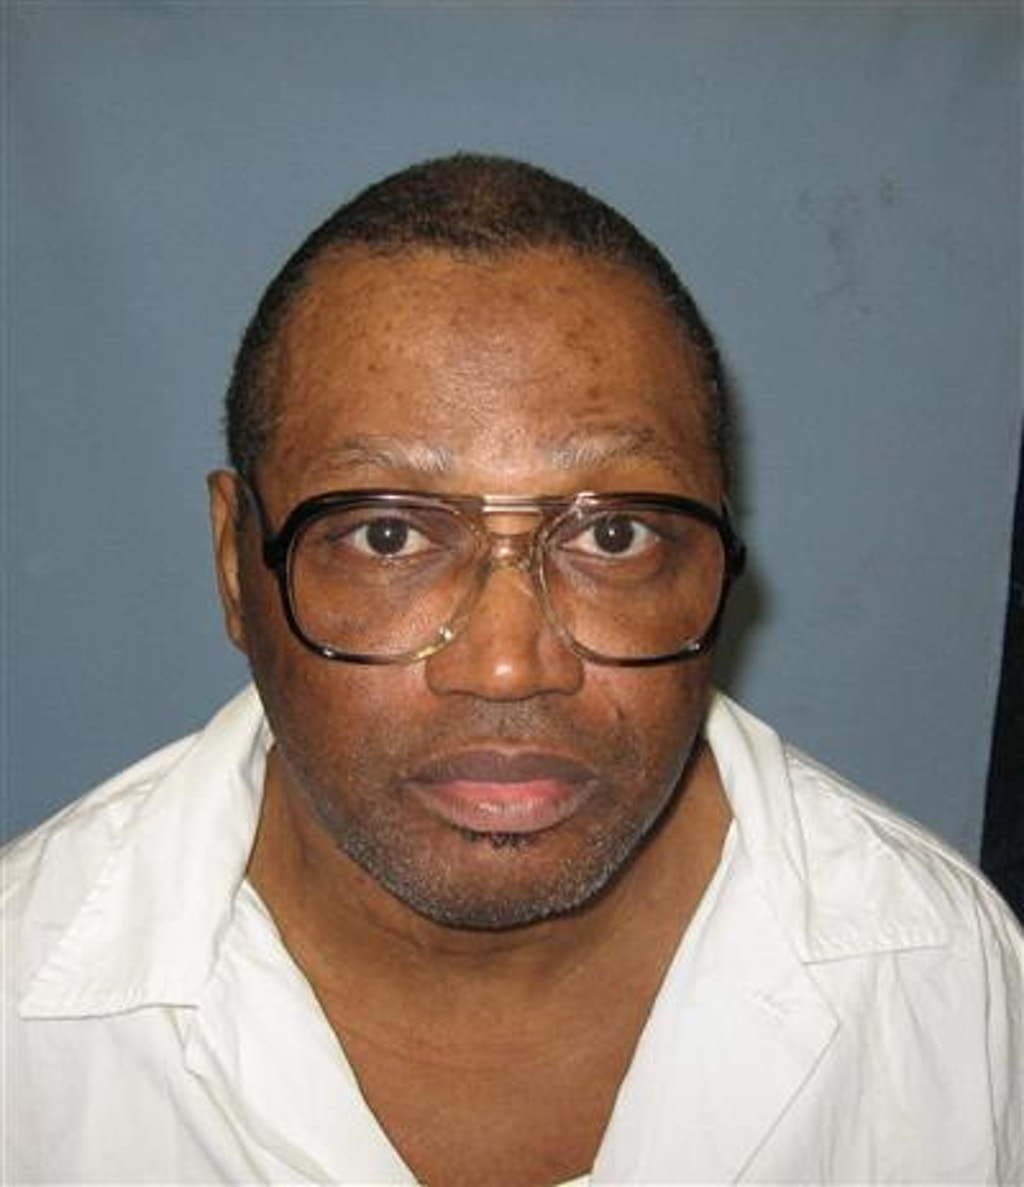 Alabama Prepares to Execute 65-Year-Old Mentally Ill Prisoner Disabled by Several Strokes